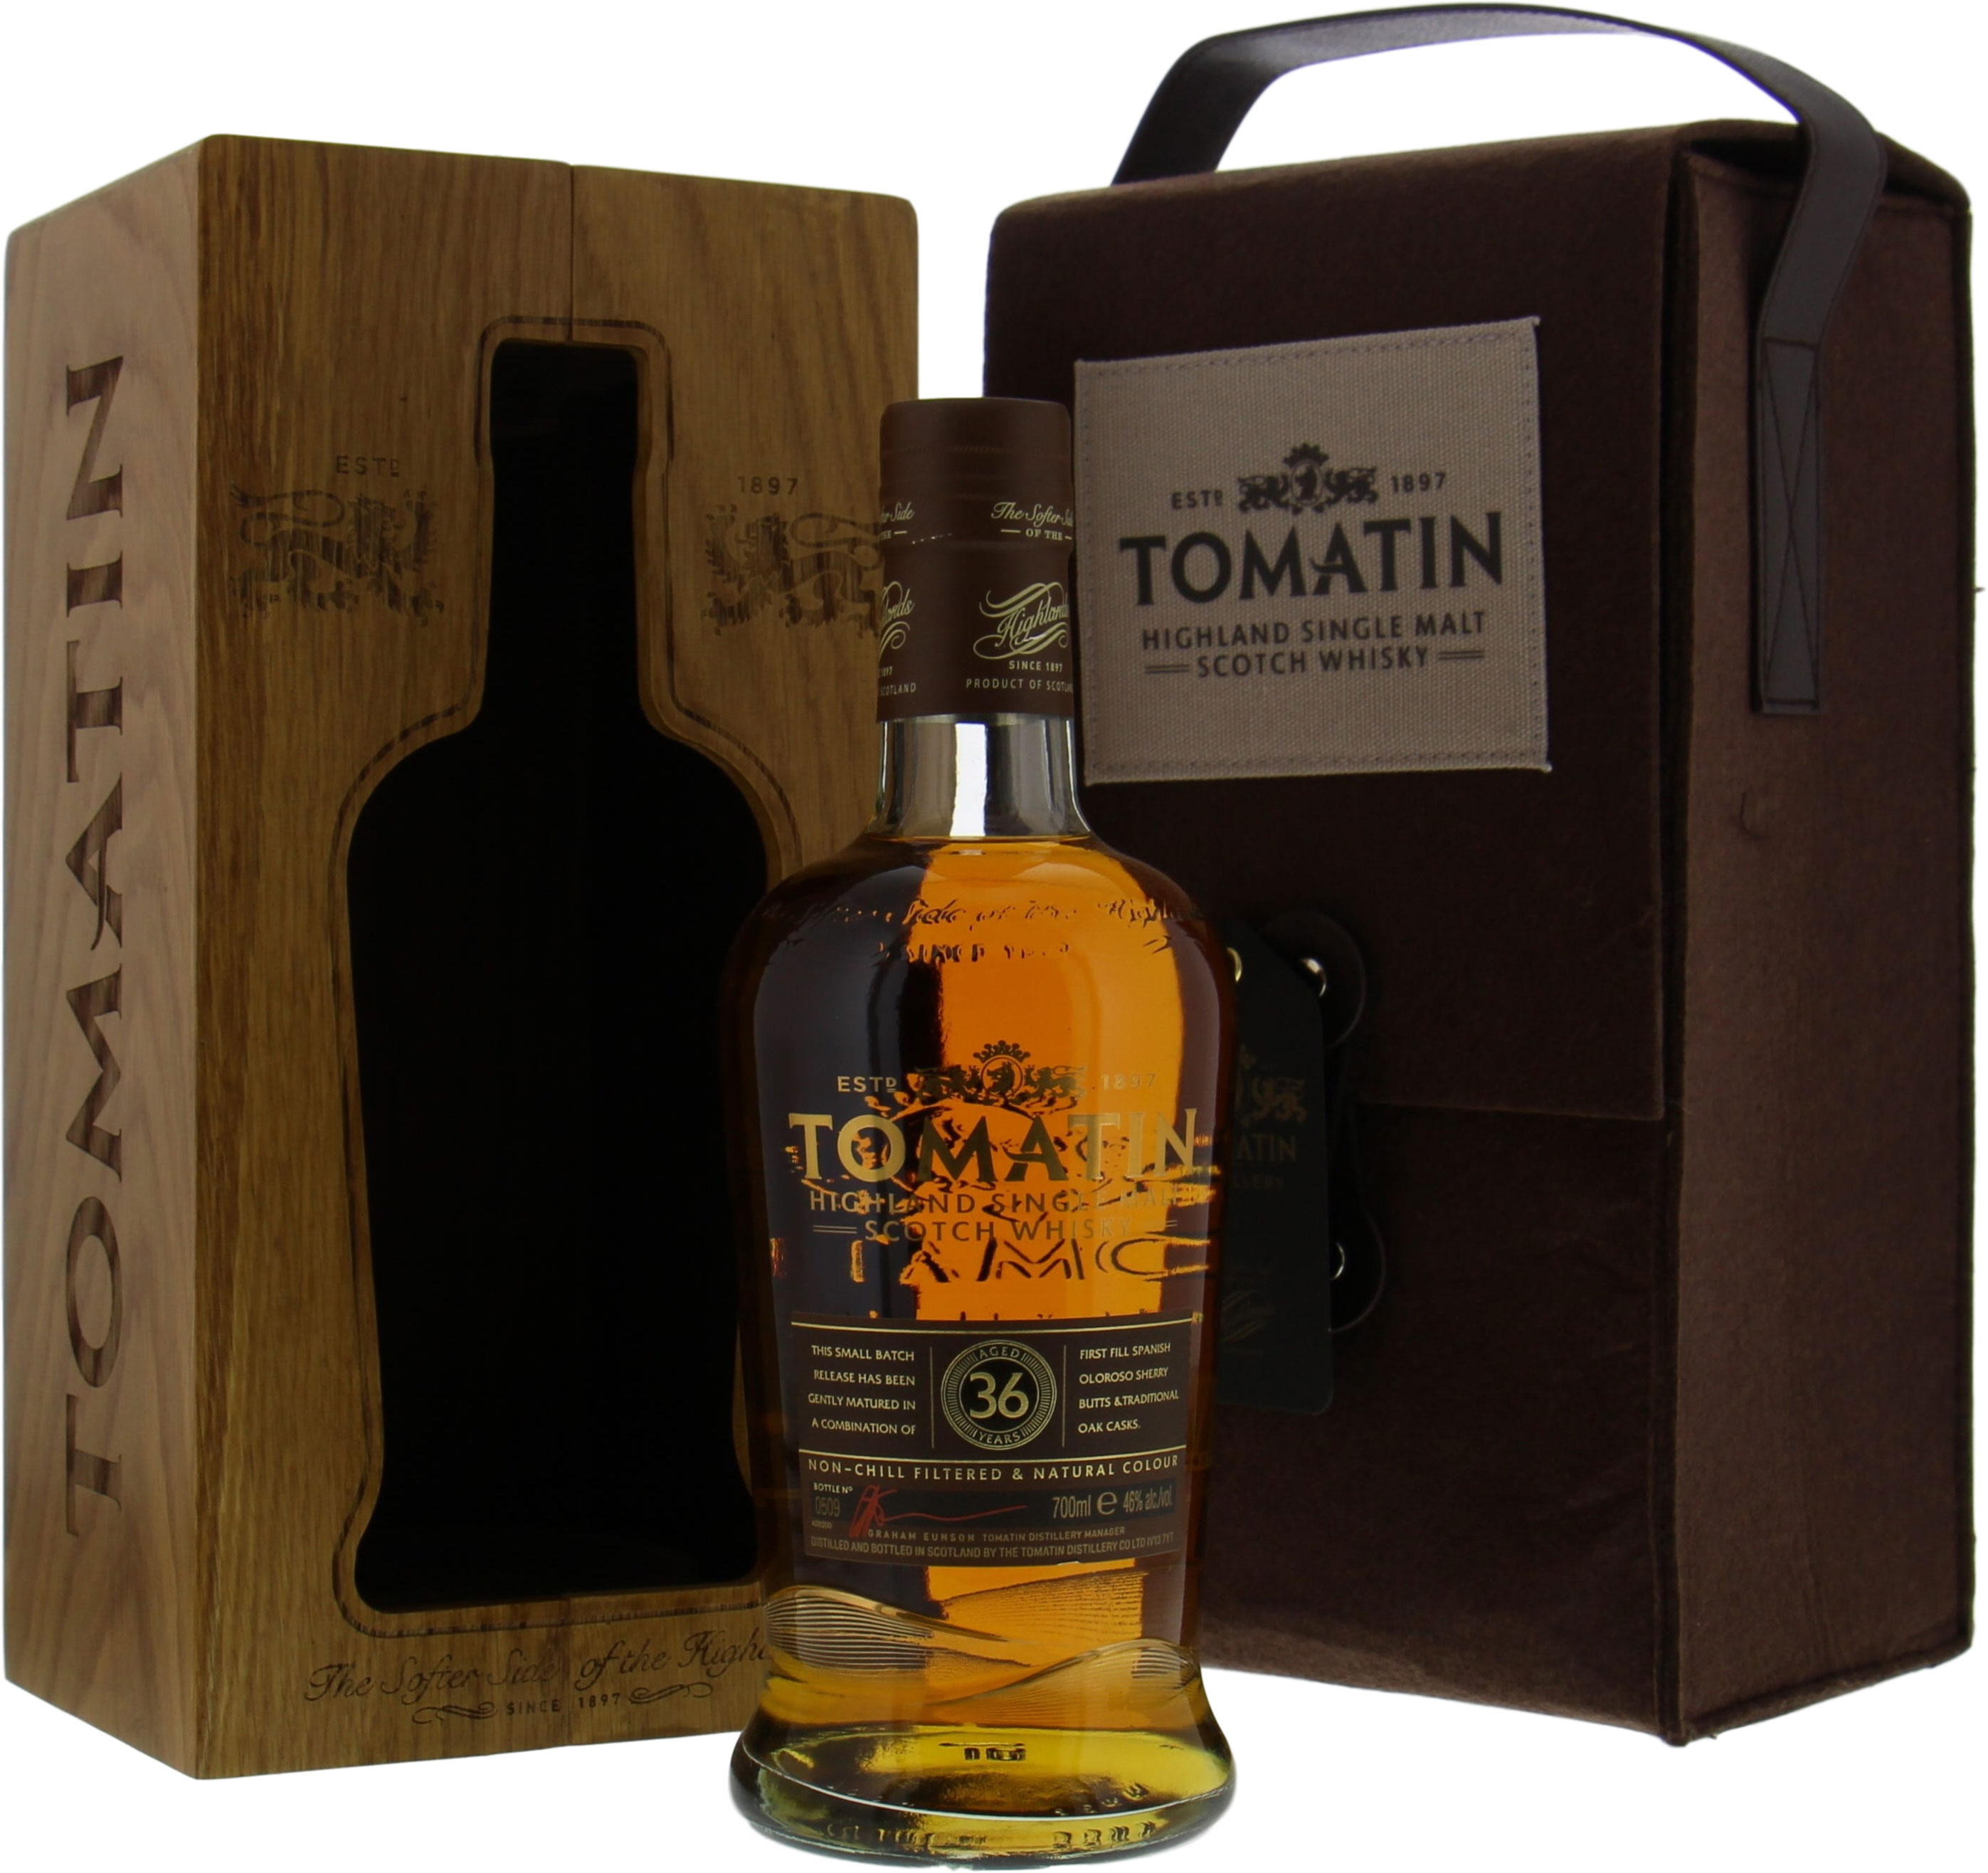 Tomatin - 36 Years Old Small Batch Release Batch 4 46% NV